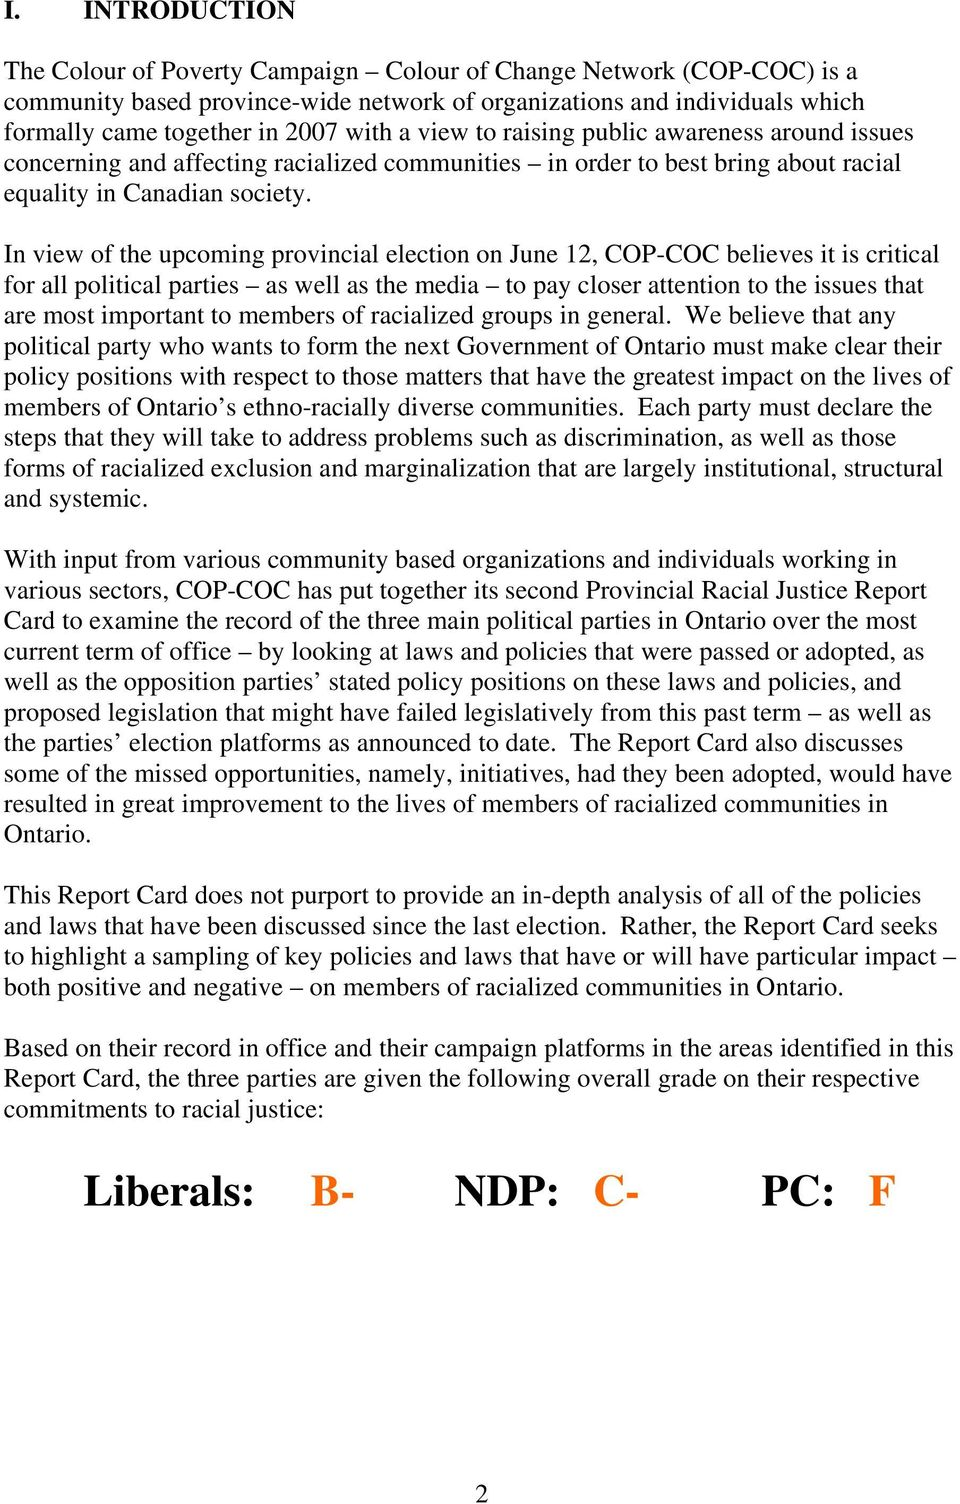 In view of the upcoming provincial election on June 12, COP-COC believes it is critical for all political parties as well as the media to pay closer attention to the issues that are most important to